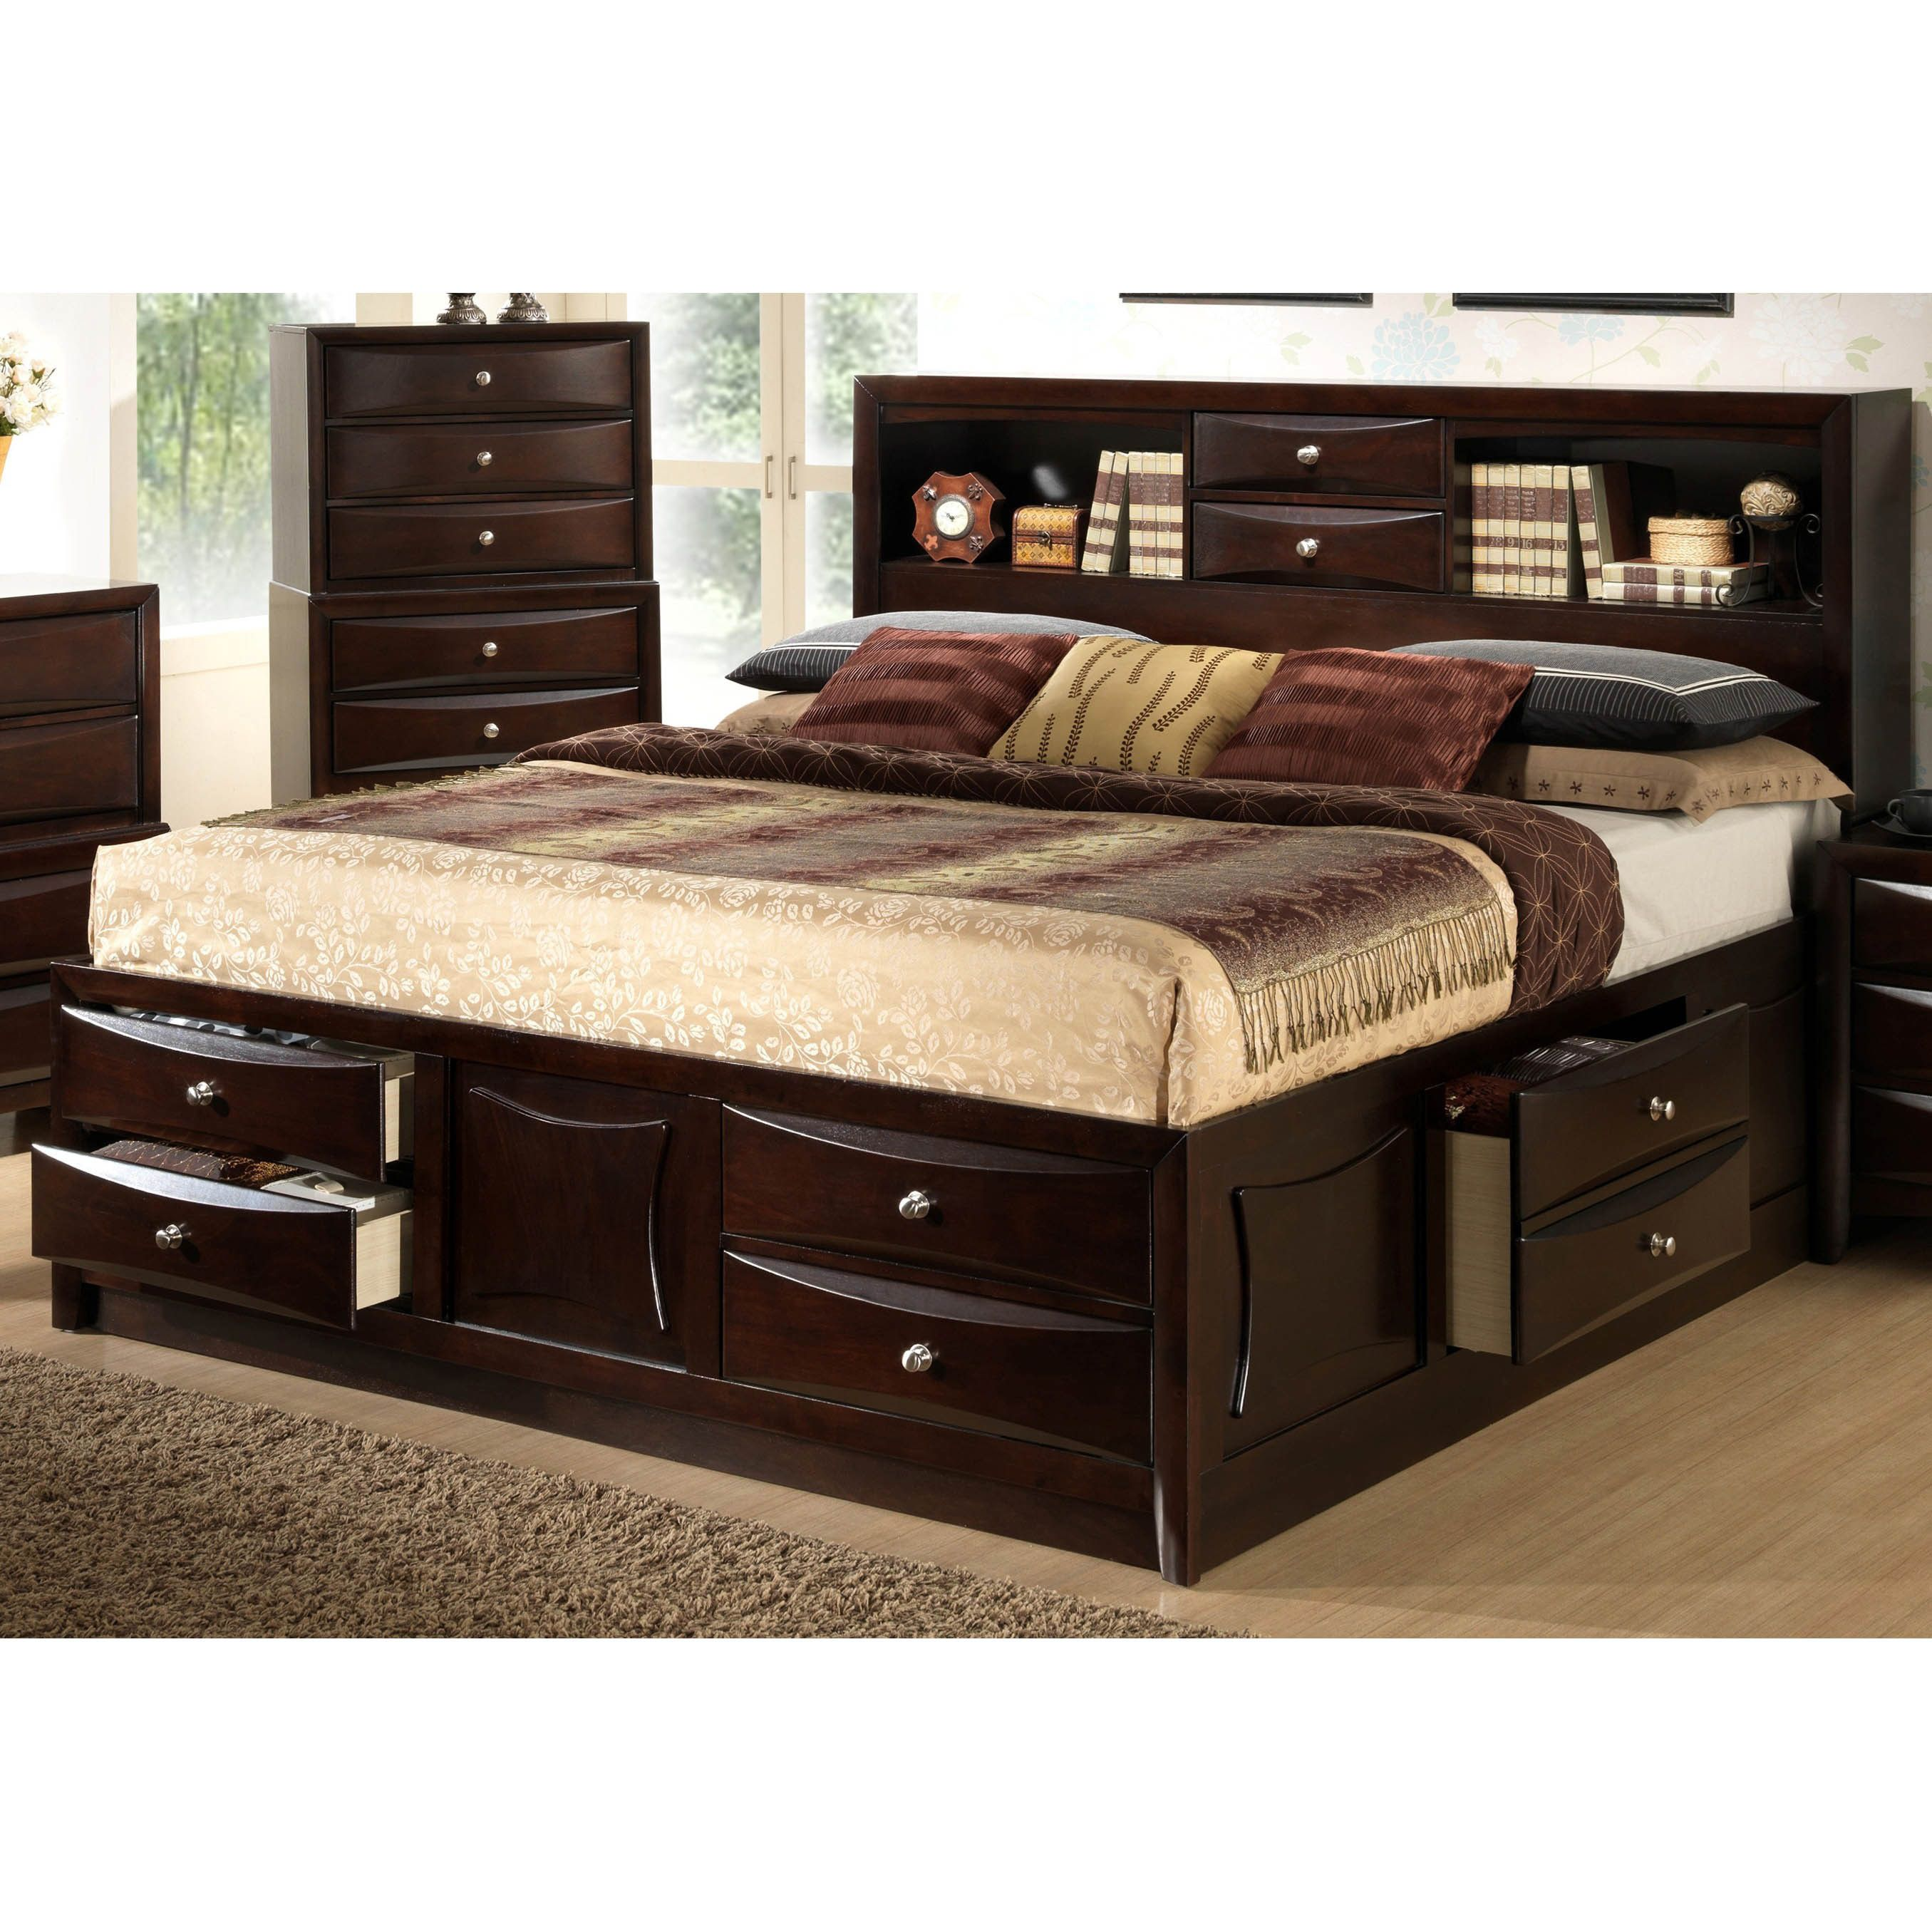 lyke home oxi storage bed queen beds 14150 | 936c00d552f3cd4d6f8d36544ba07164